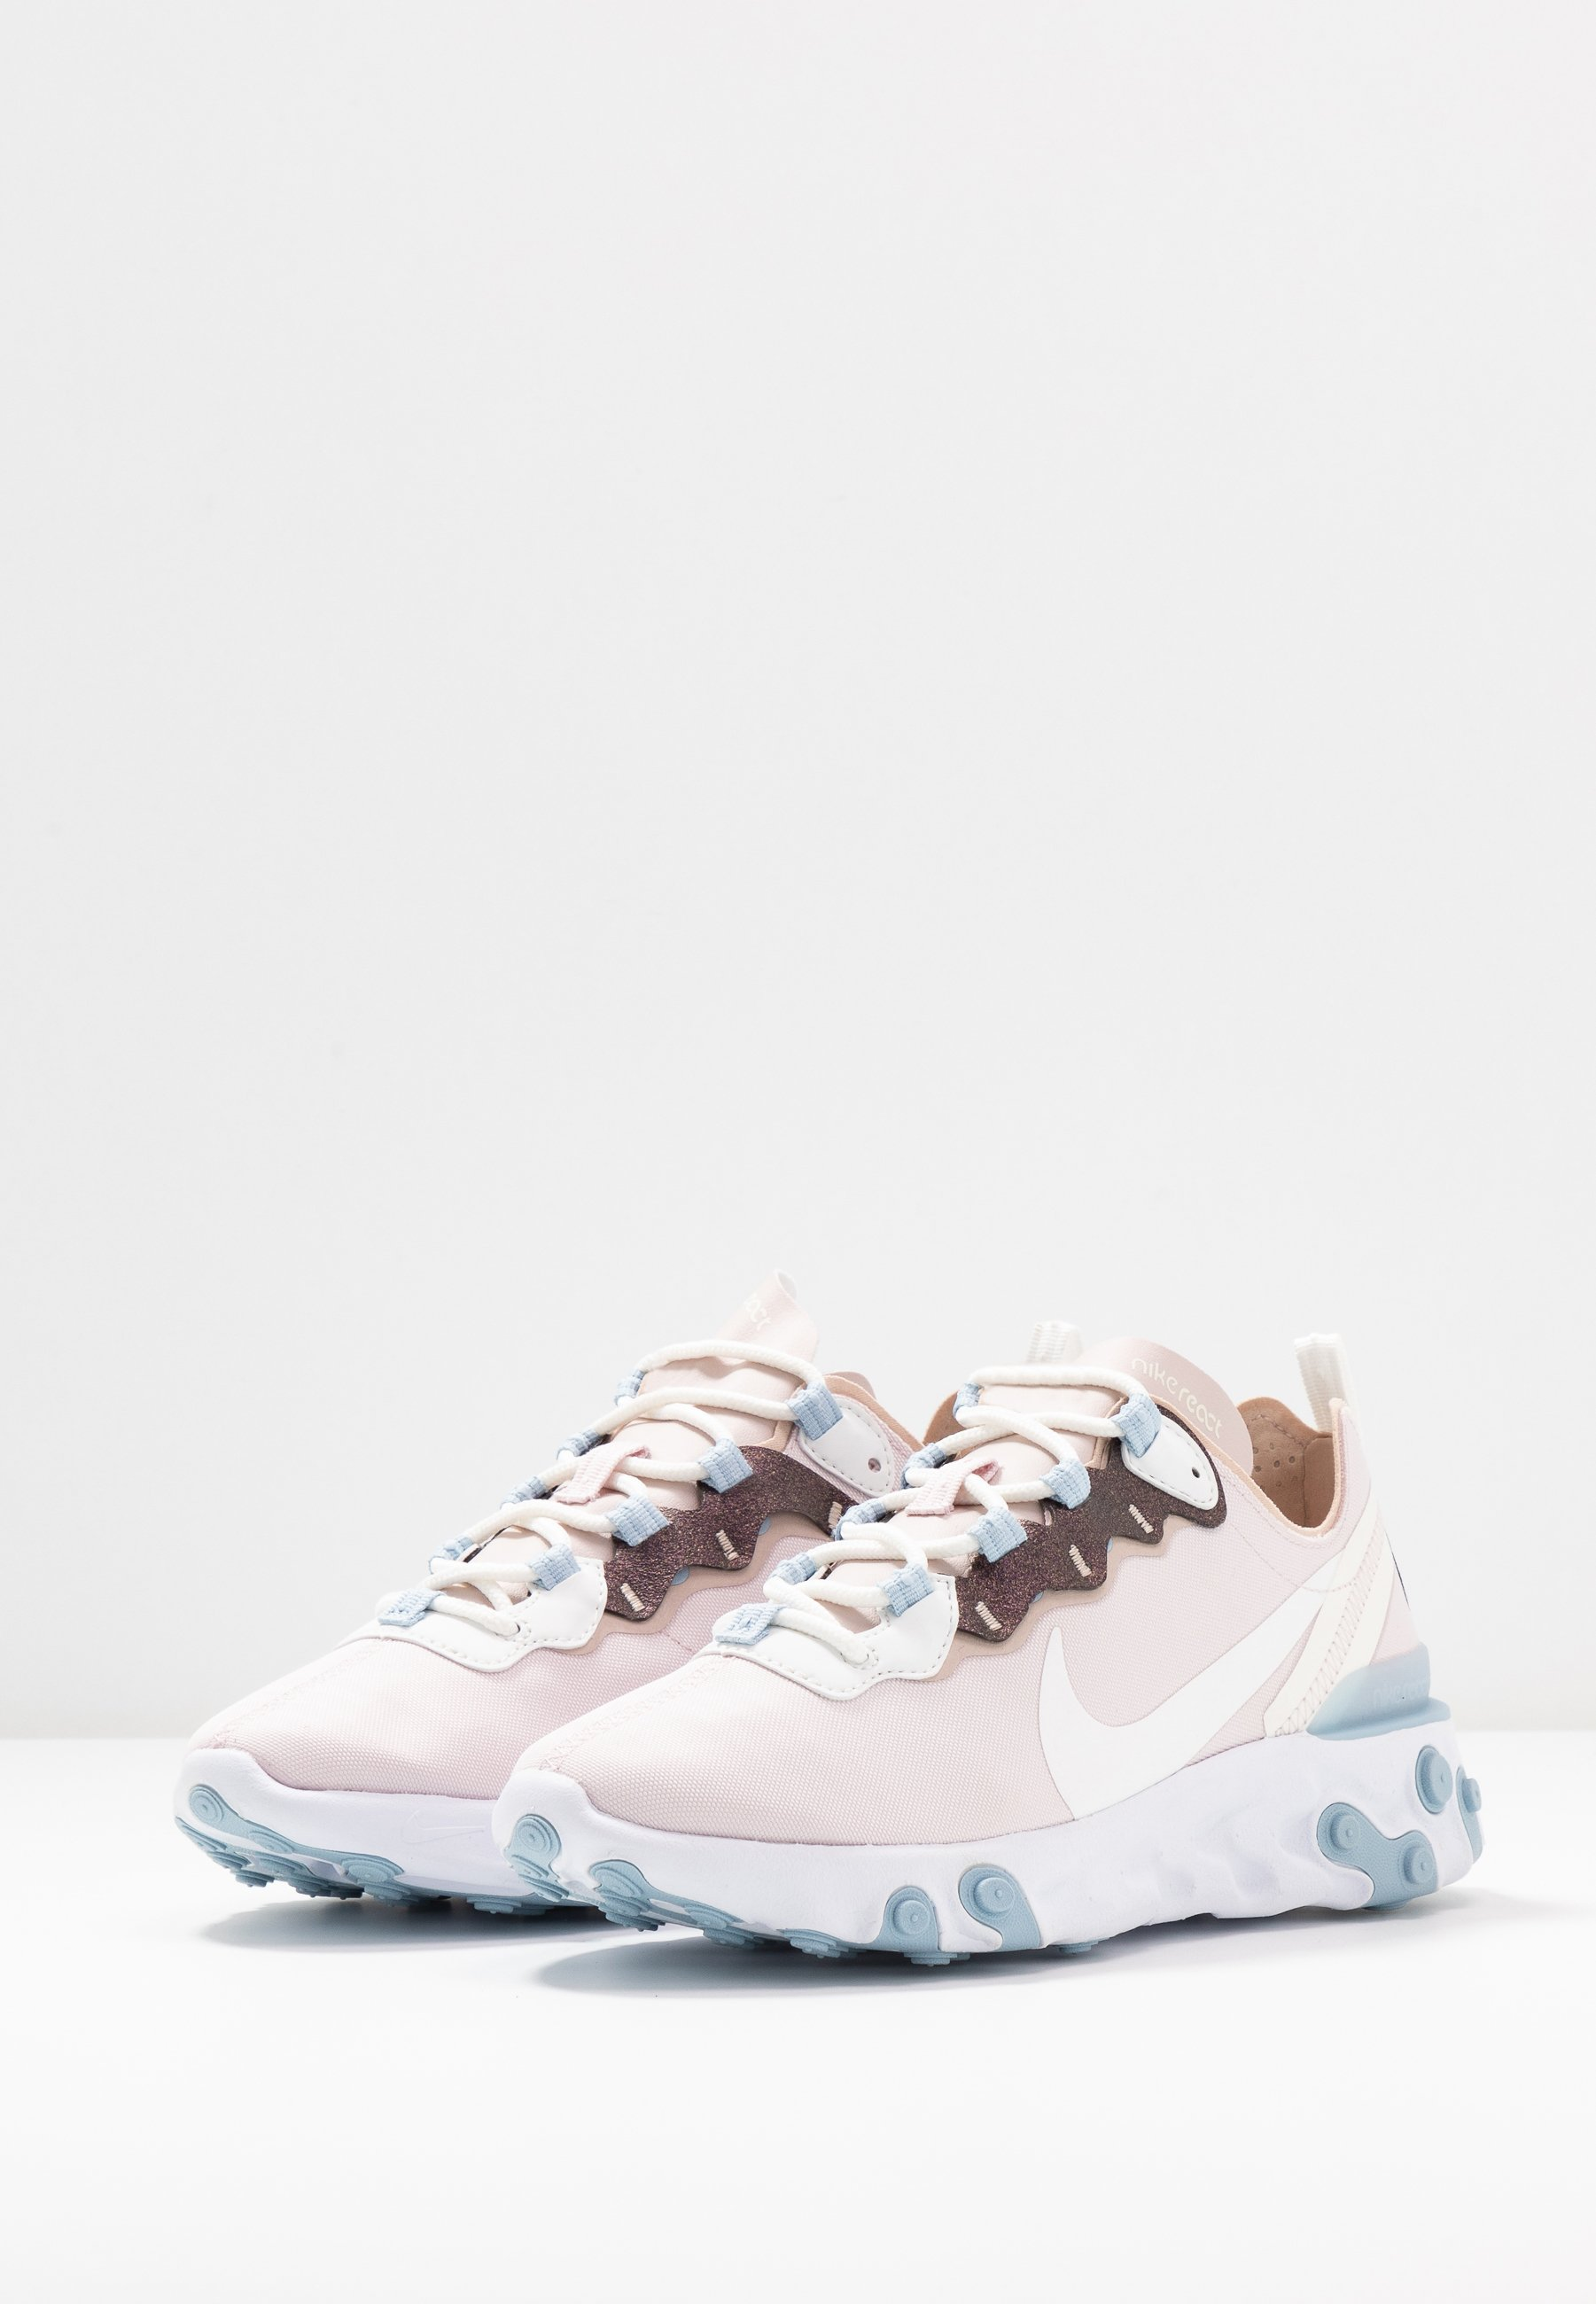 Sneakers barely rosefossil stonesummit whitelight armory blue